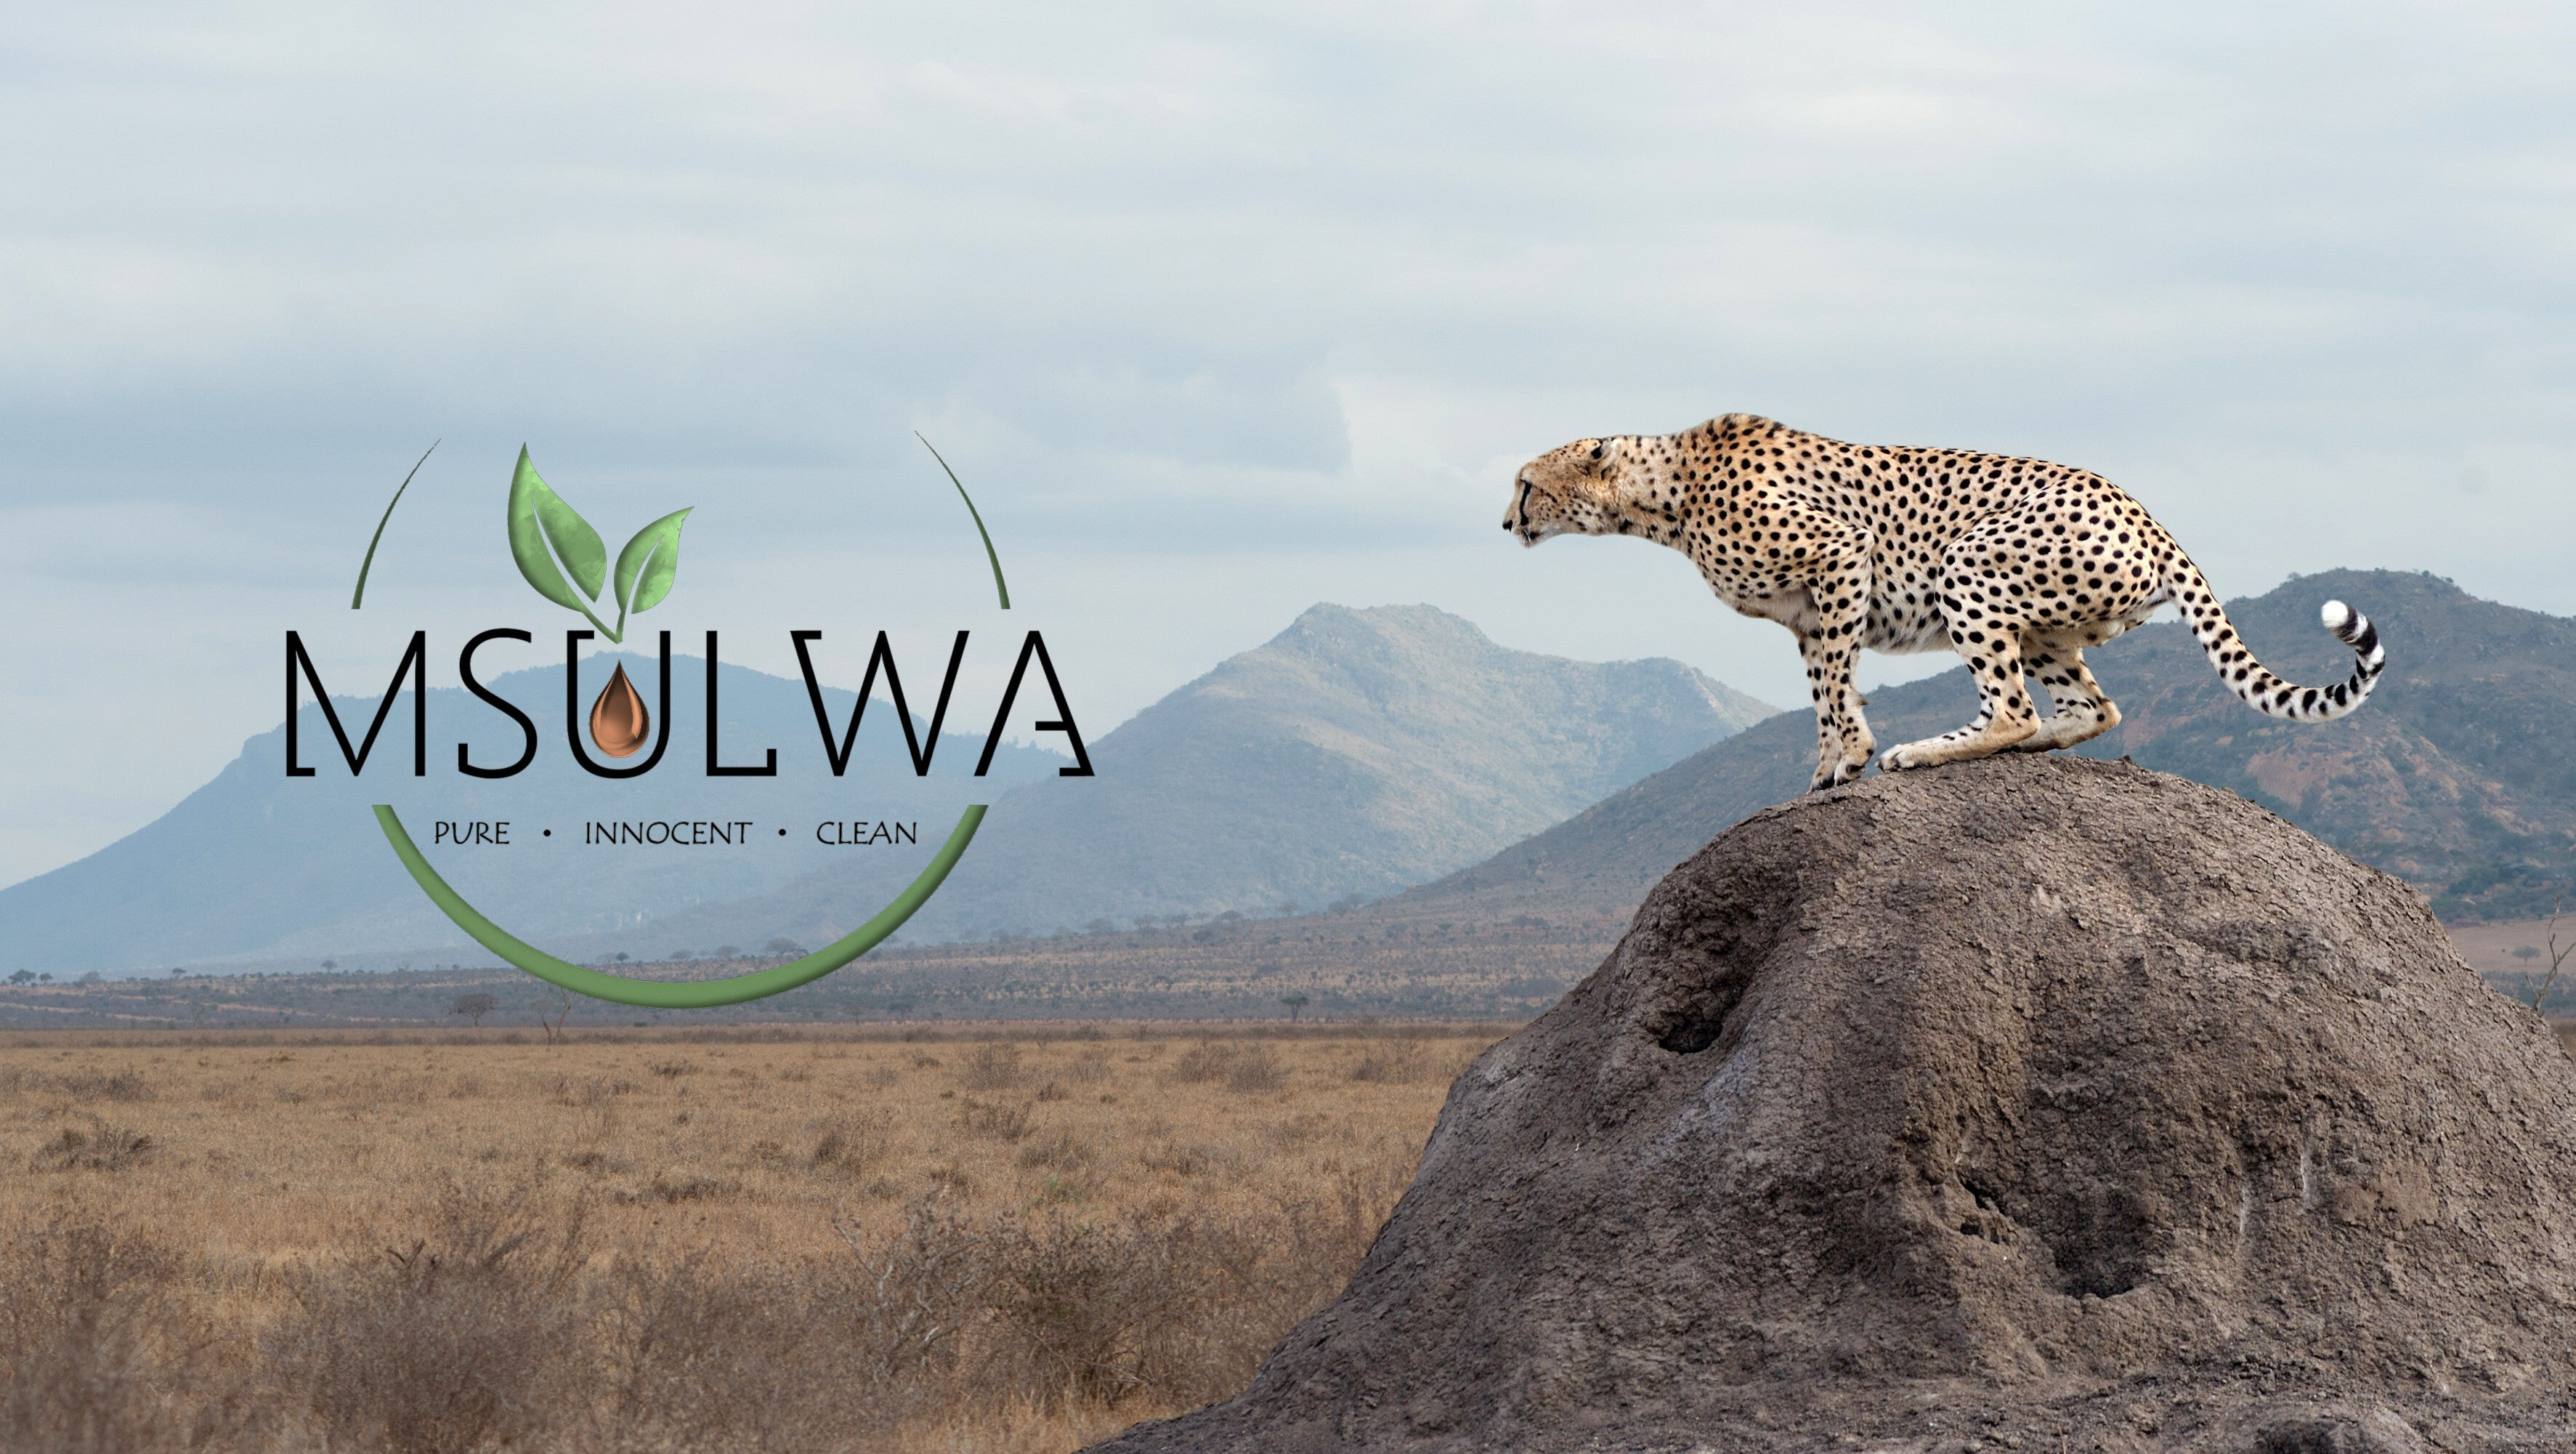 Msulwa eco-friendly products shop online at www.msulwa.co.za and www.msulwa.com